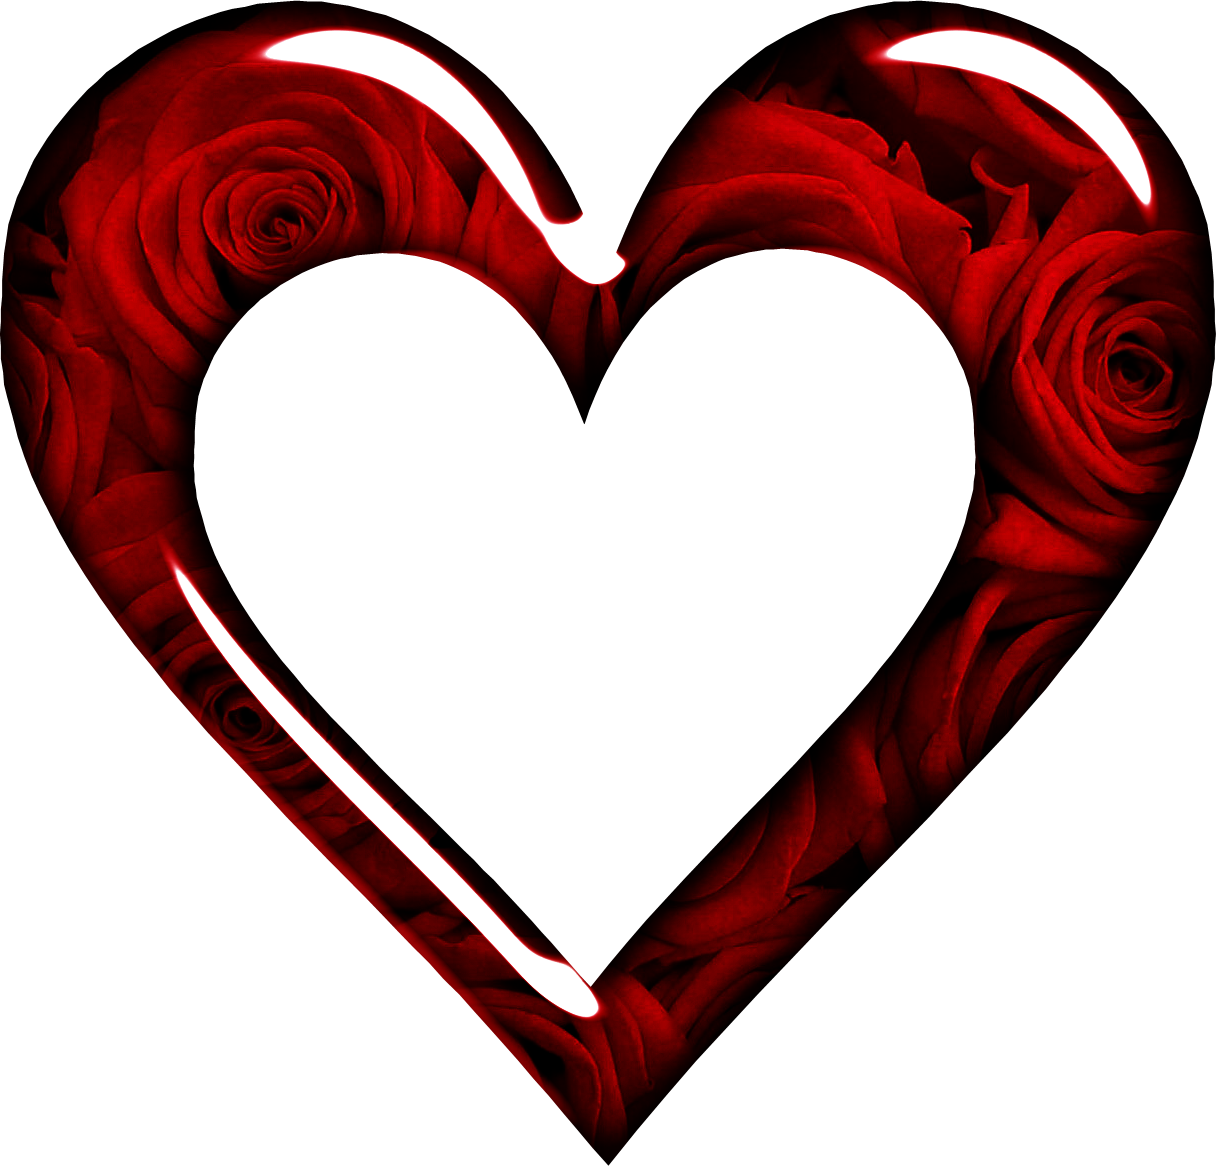 Heart Png Images With Transparent Background | Free download best ...